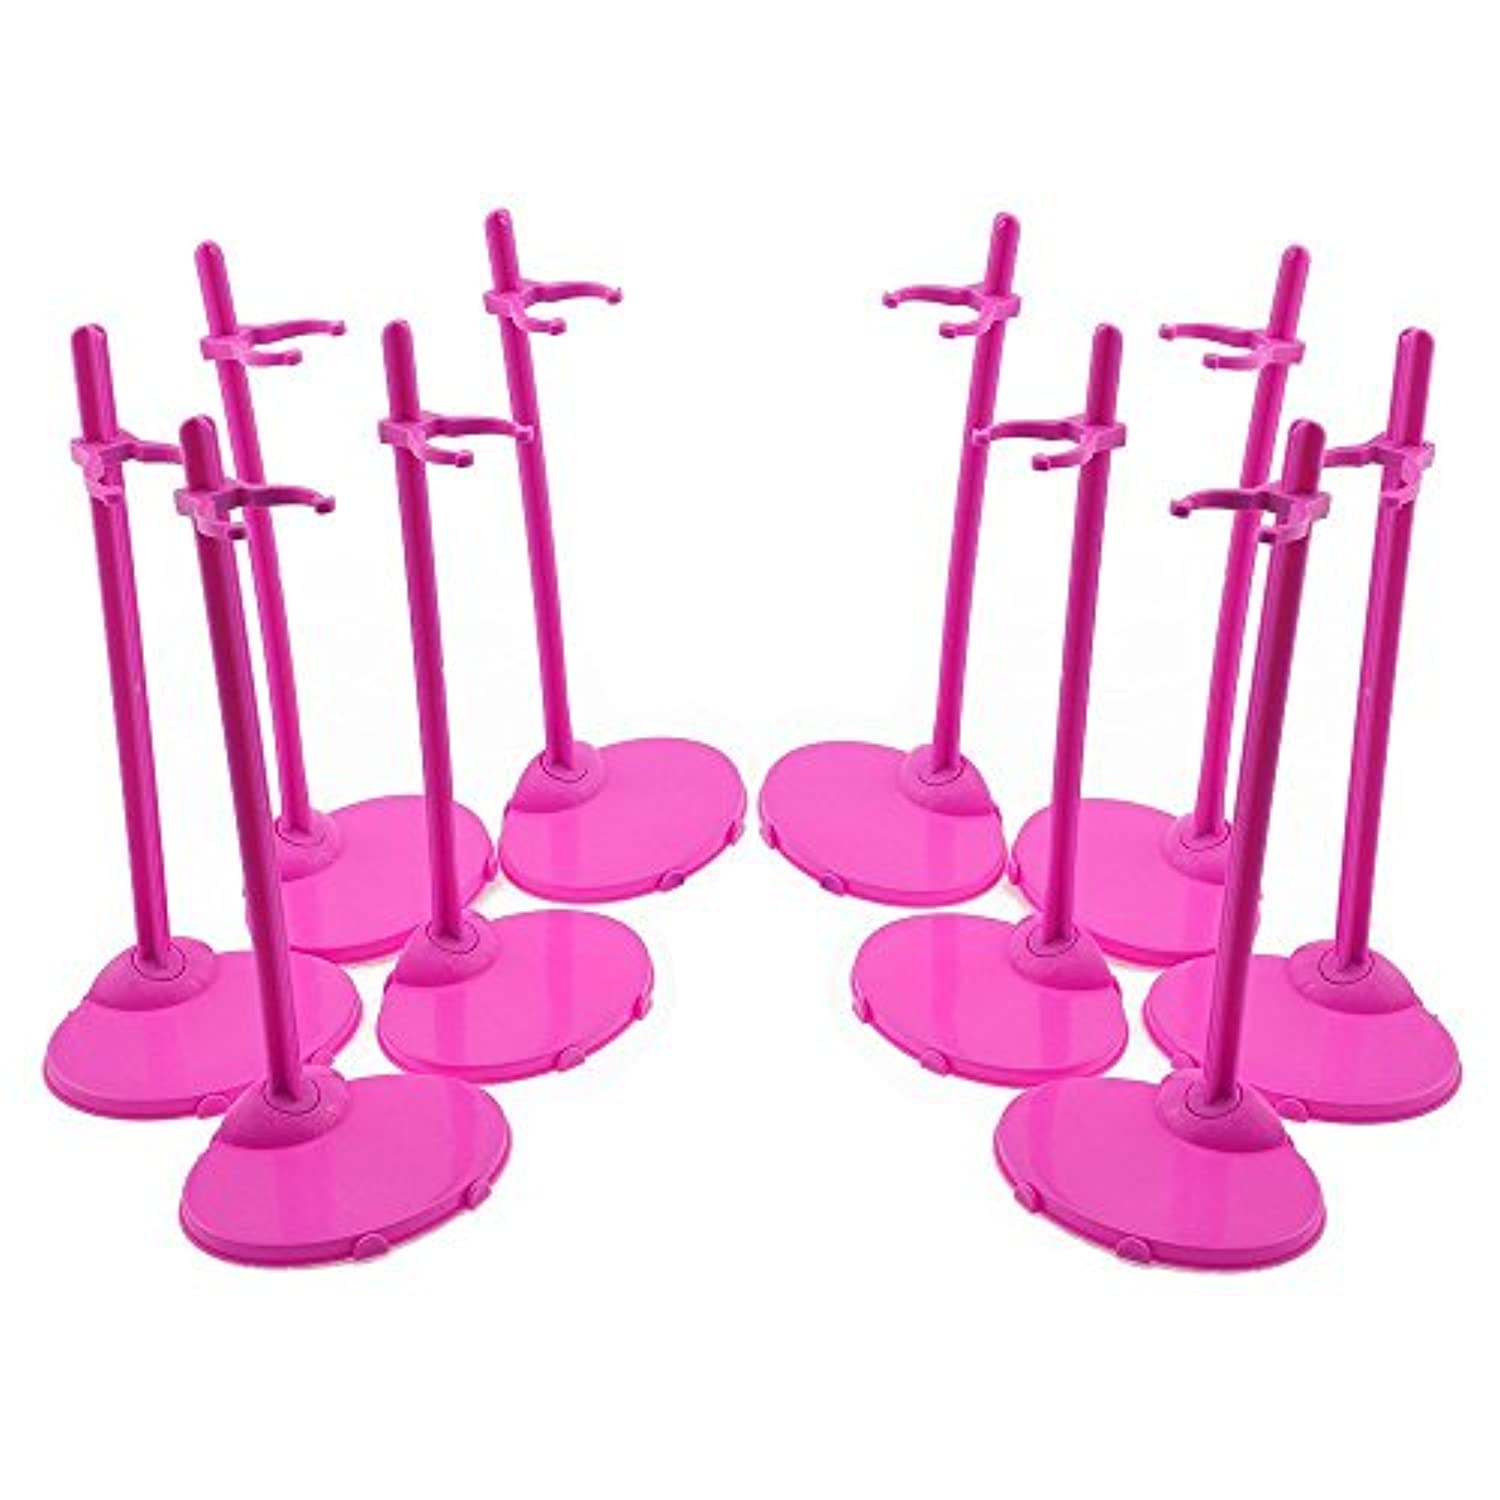 U.WILL 10 Pcs Toy Stand Support for Barbie Dolls Prop up Mannequin Model Display Holder pink